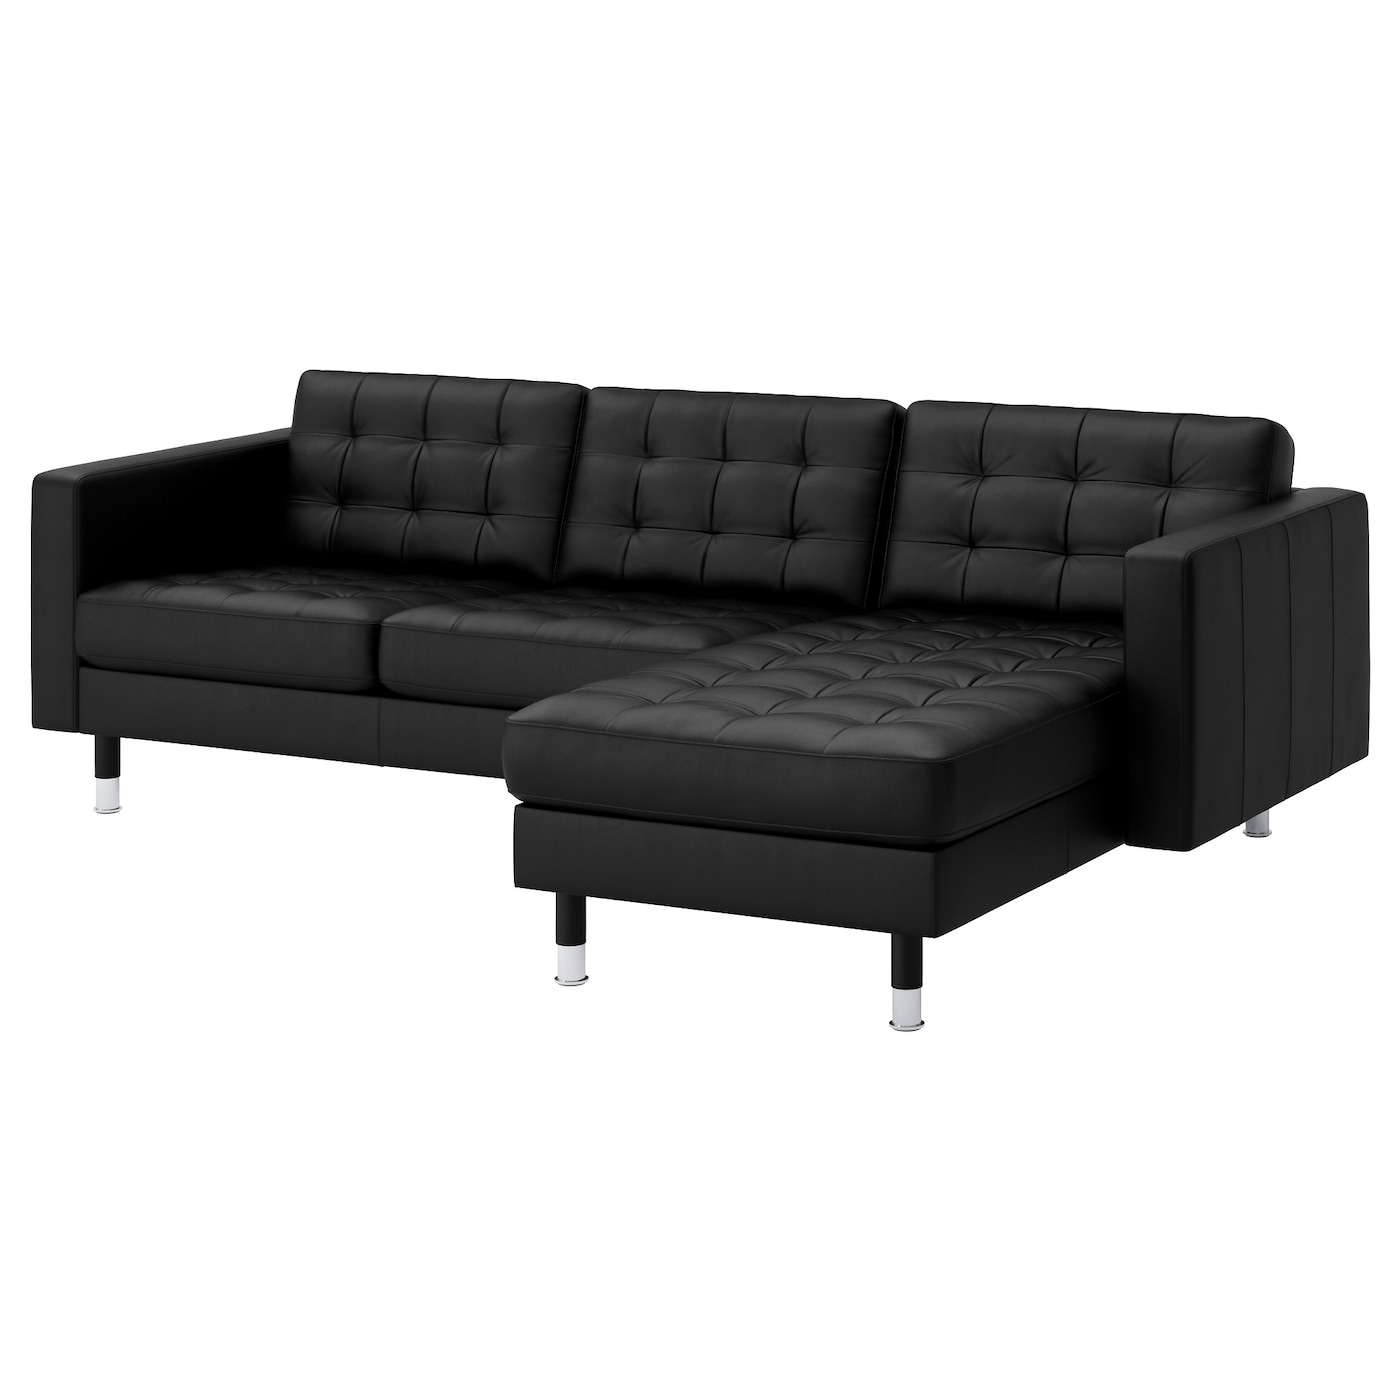 Small sofa 2 seater sofa ikea for Chaise 65 cm ikea